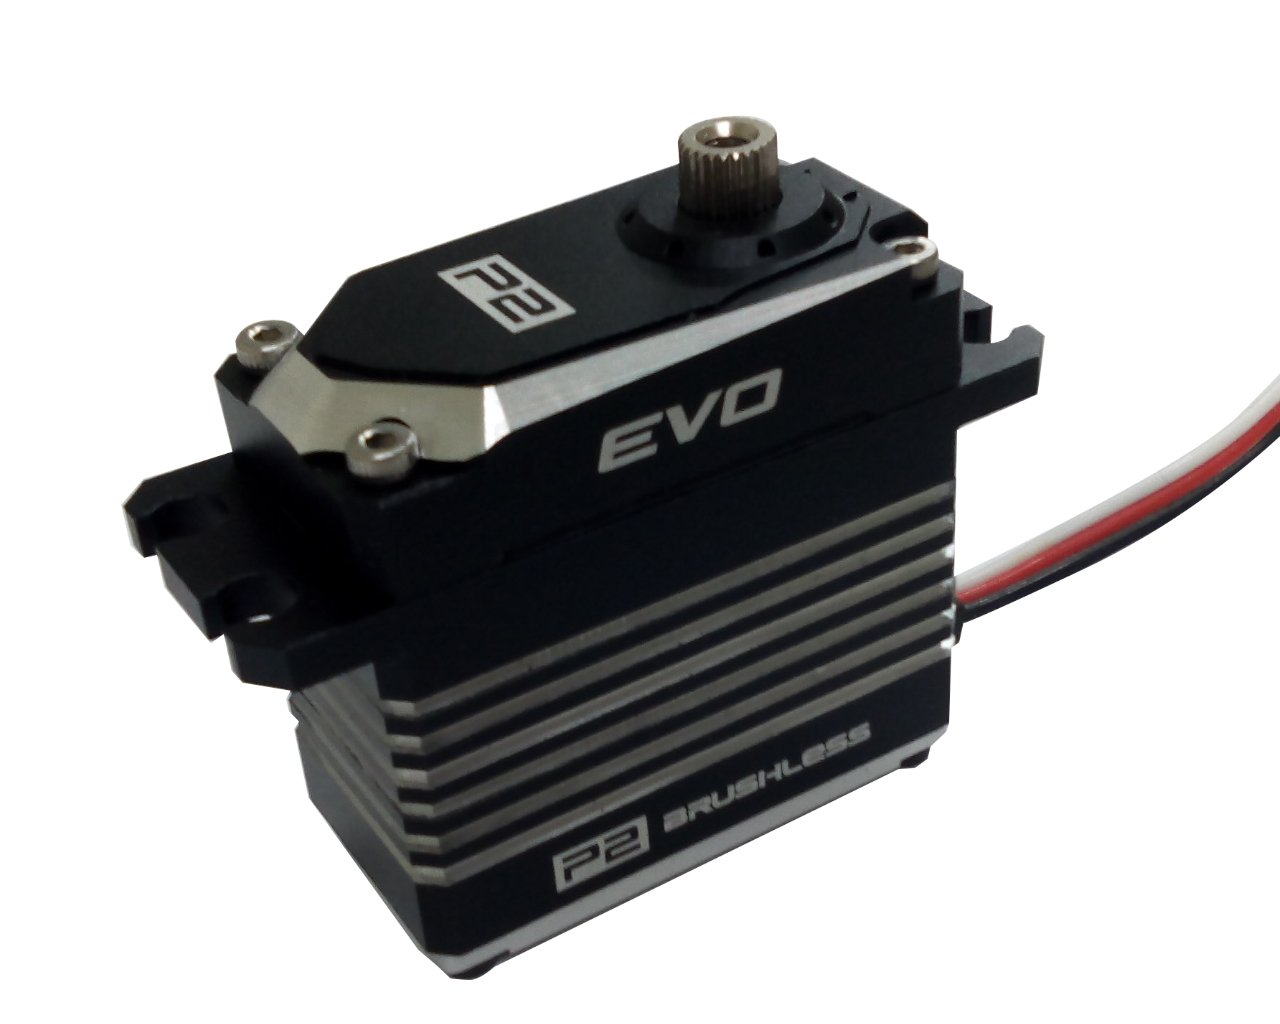 EVO-P2 Digital Brushless servo - High Speed/Voltage Ultra High TorqueS